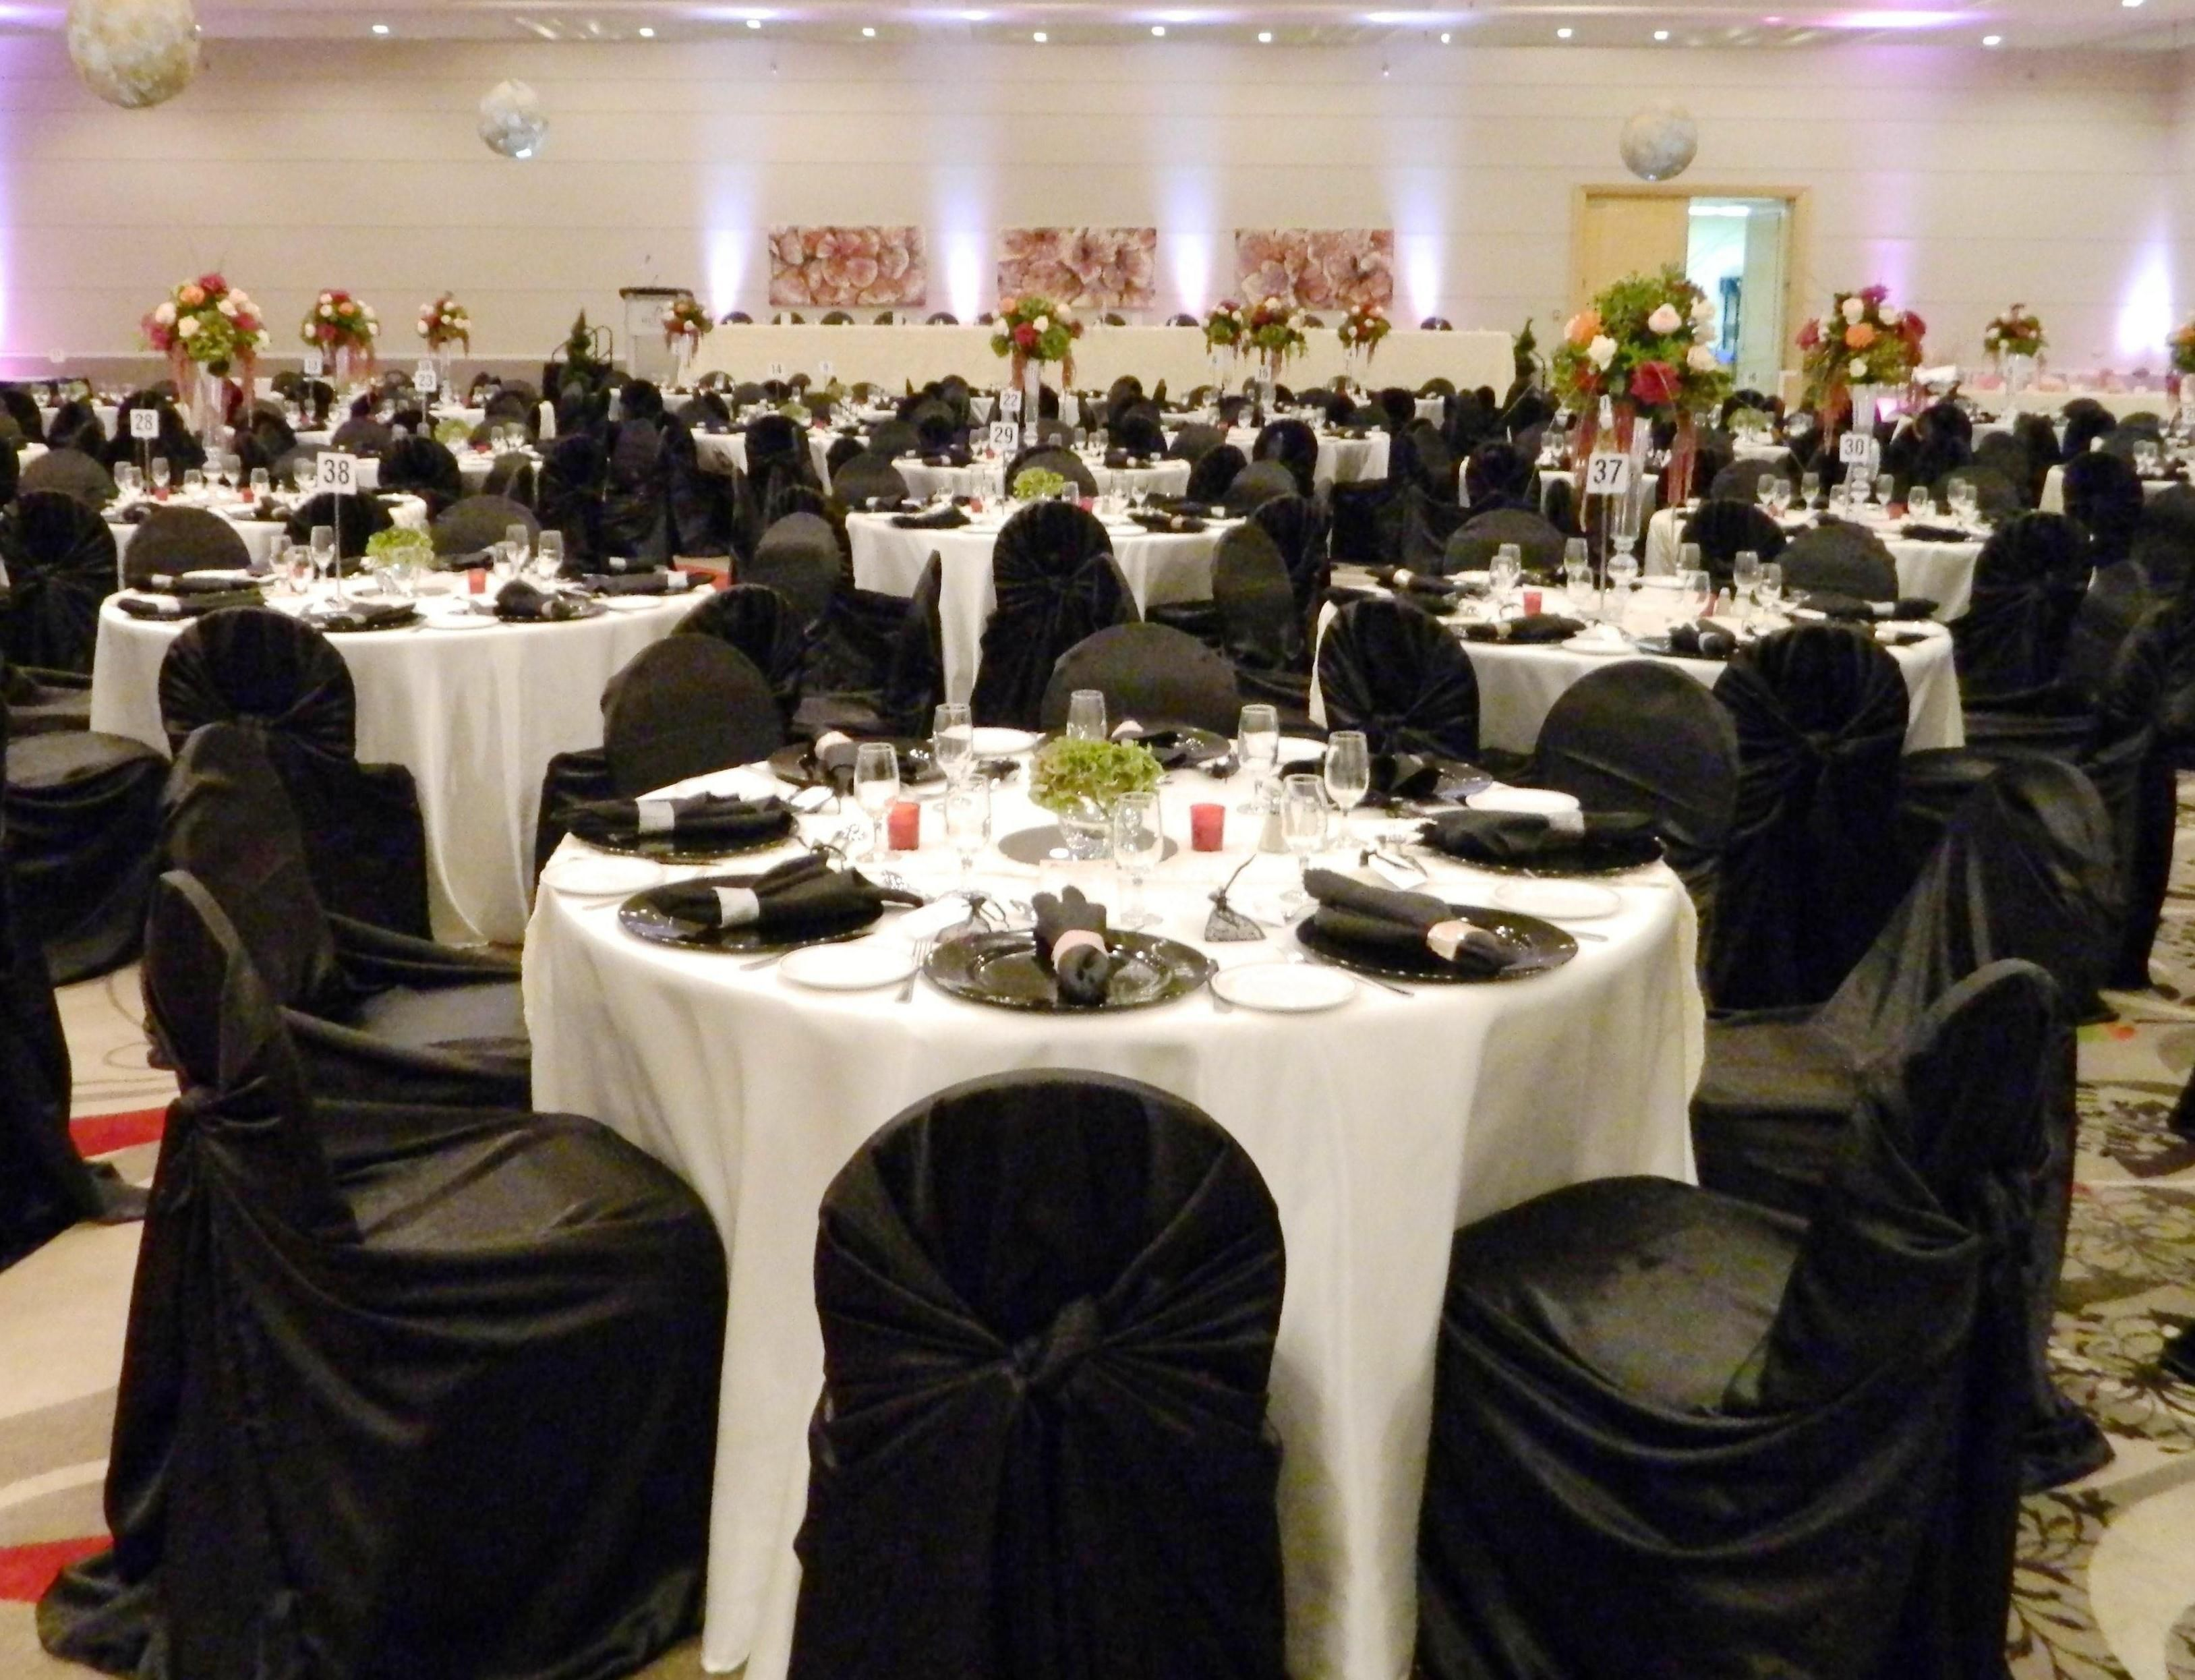 cheap black chair covers for sale stool toddlers white tablecloths runner napkins silver sashes linens skirting etc a tymeless event